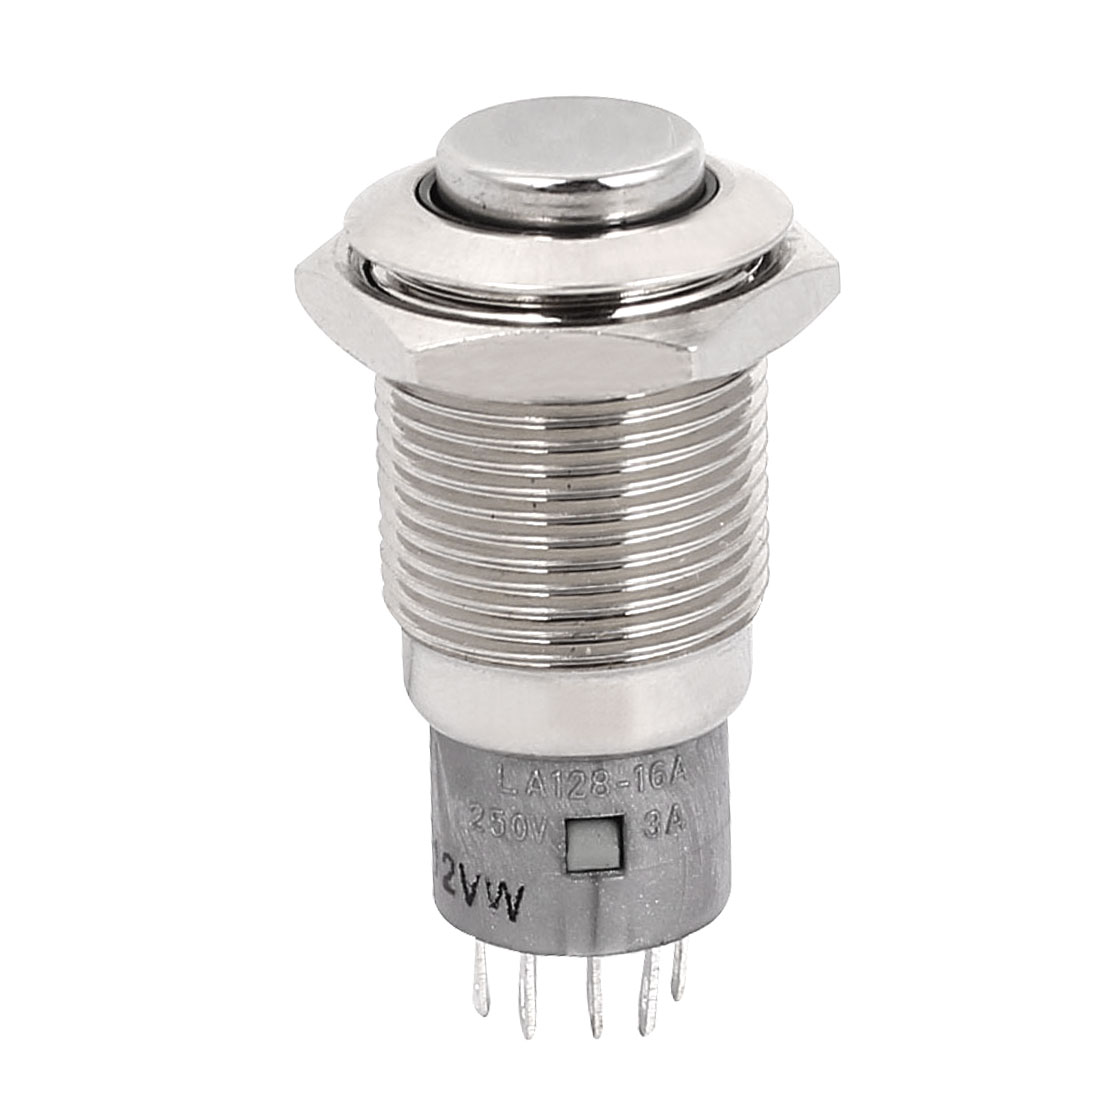 DC 12V Dome Top 5 Pins 16mm White LED Momentary Push Button Pushbutton Switch